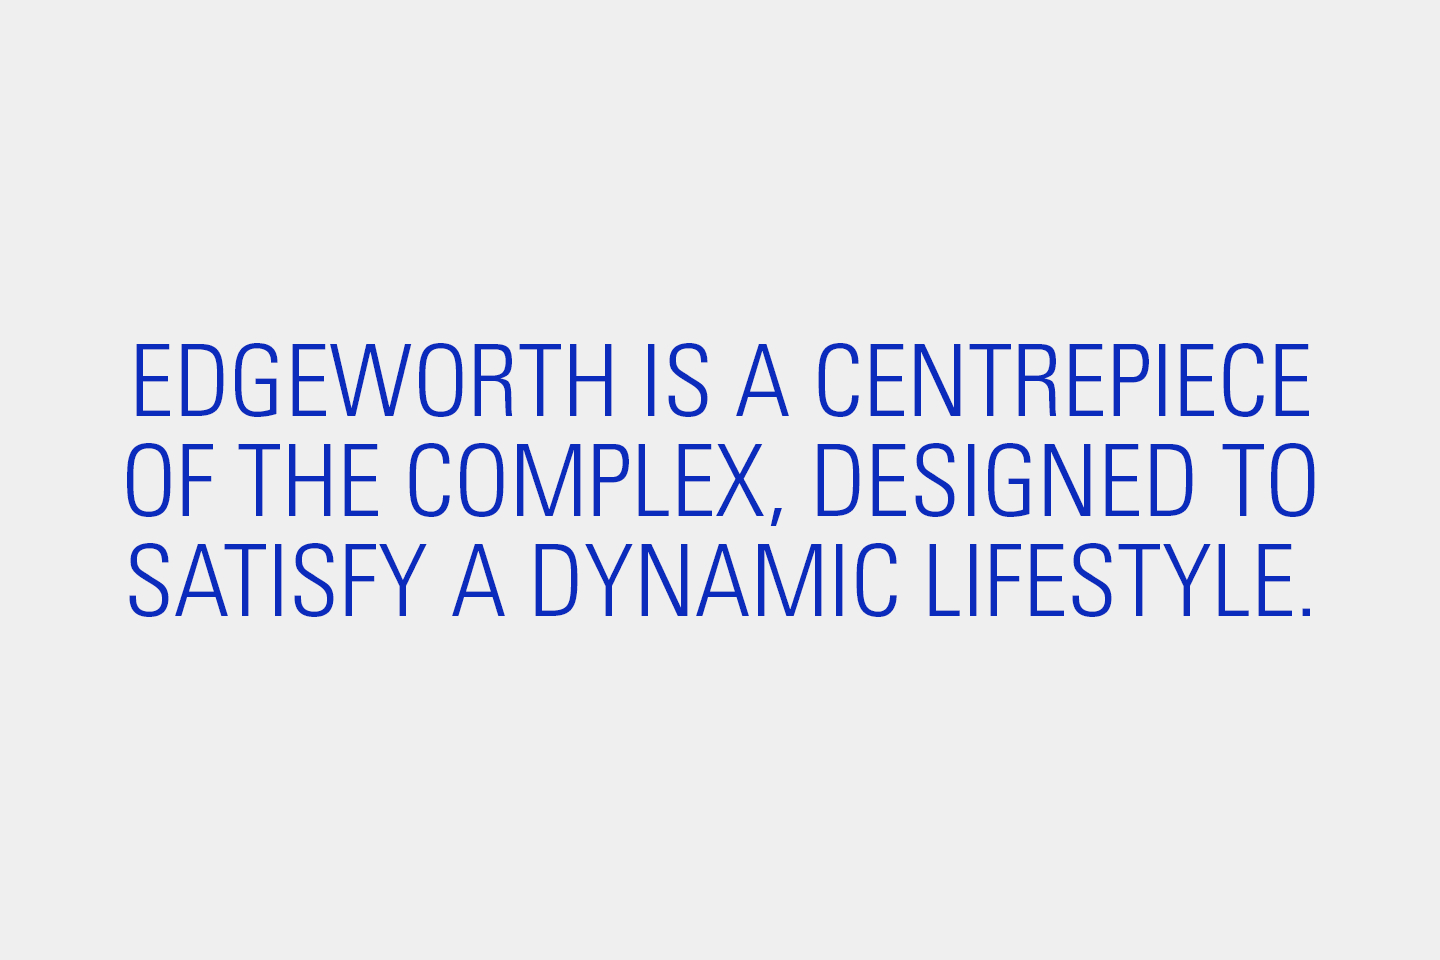 Edgeworth is a centrepiece of the complex, designed to satisfy a dynamic lifestyle.